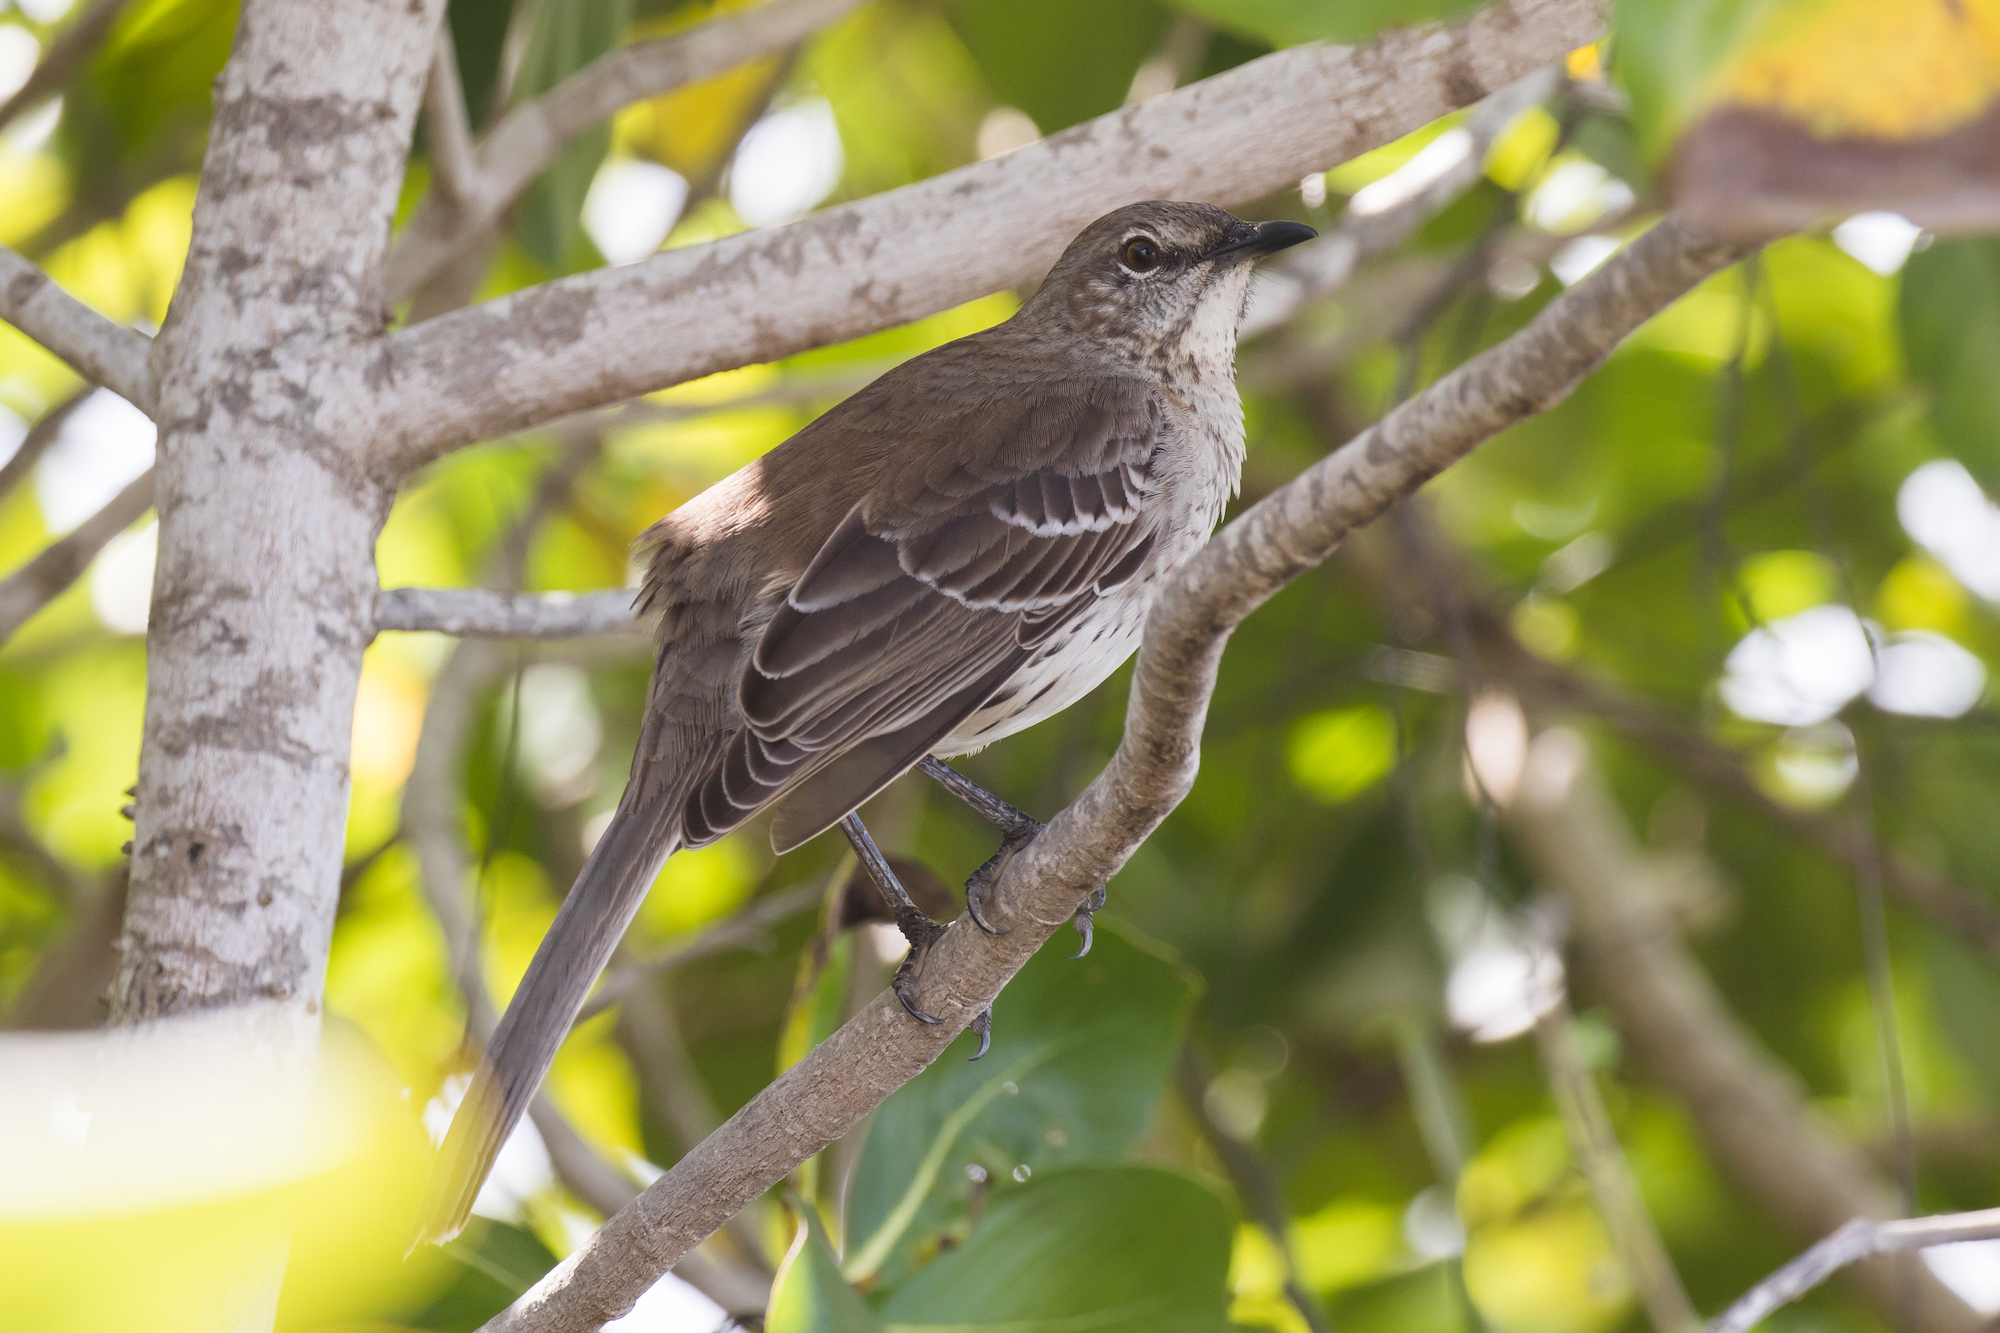 Courtroom choice 'a much-needed win for migratory birds' – BirdWatching  Courtroom choice 'a much-needed win for migratory birds' – BirdWatching bahama mockingbird shutterstock 712171072